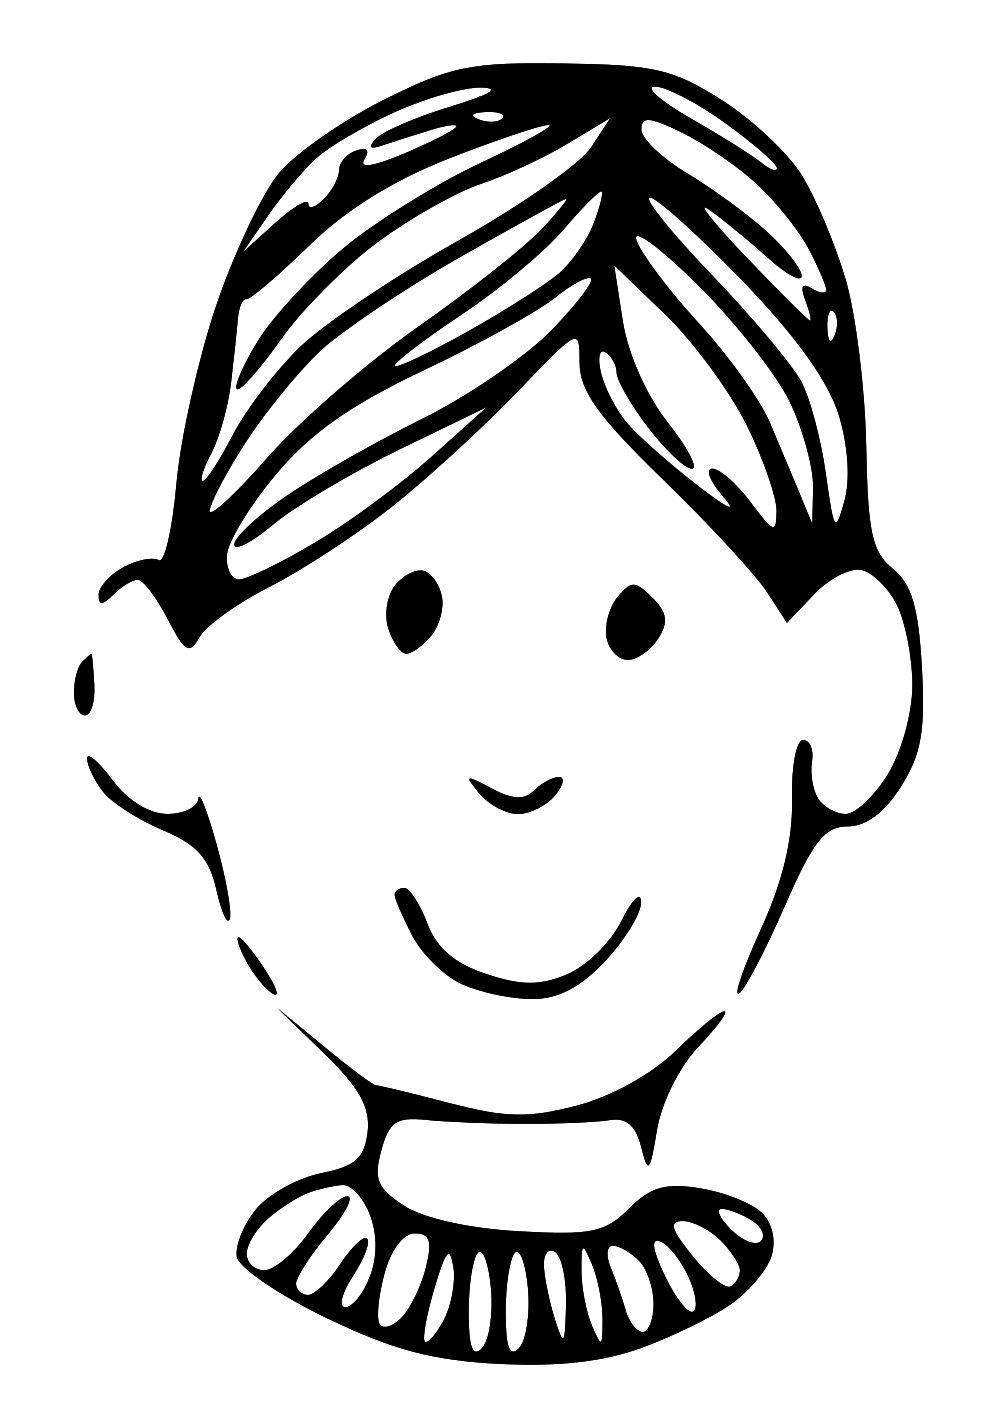 Boy girl face clipart black and white clip free download Free Boy Face Cliparts, Download Free Clip Art, Free Clip Art on ... clip free download